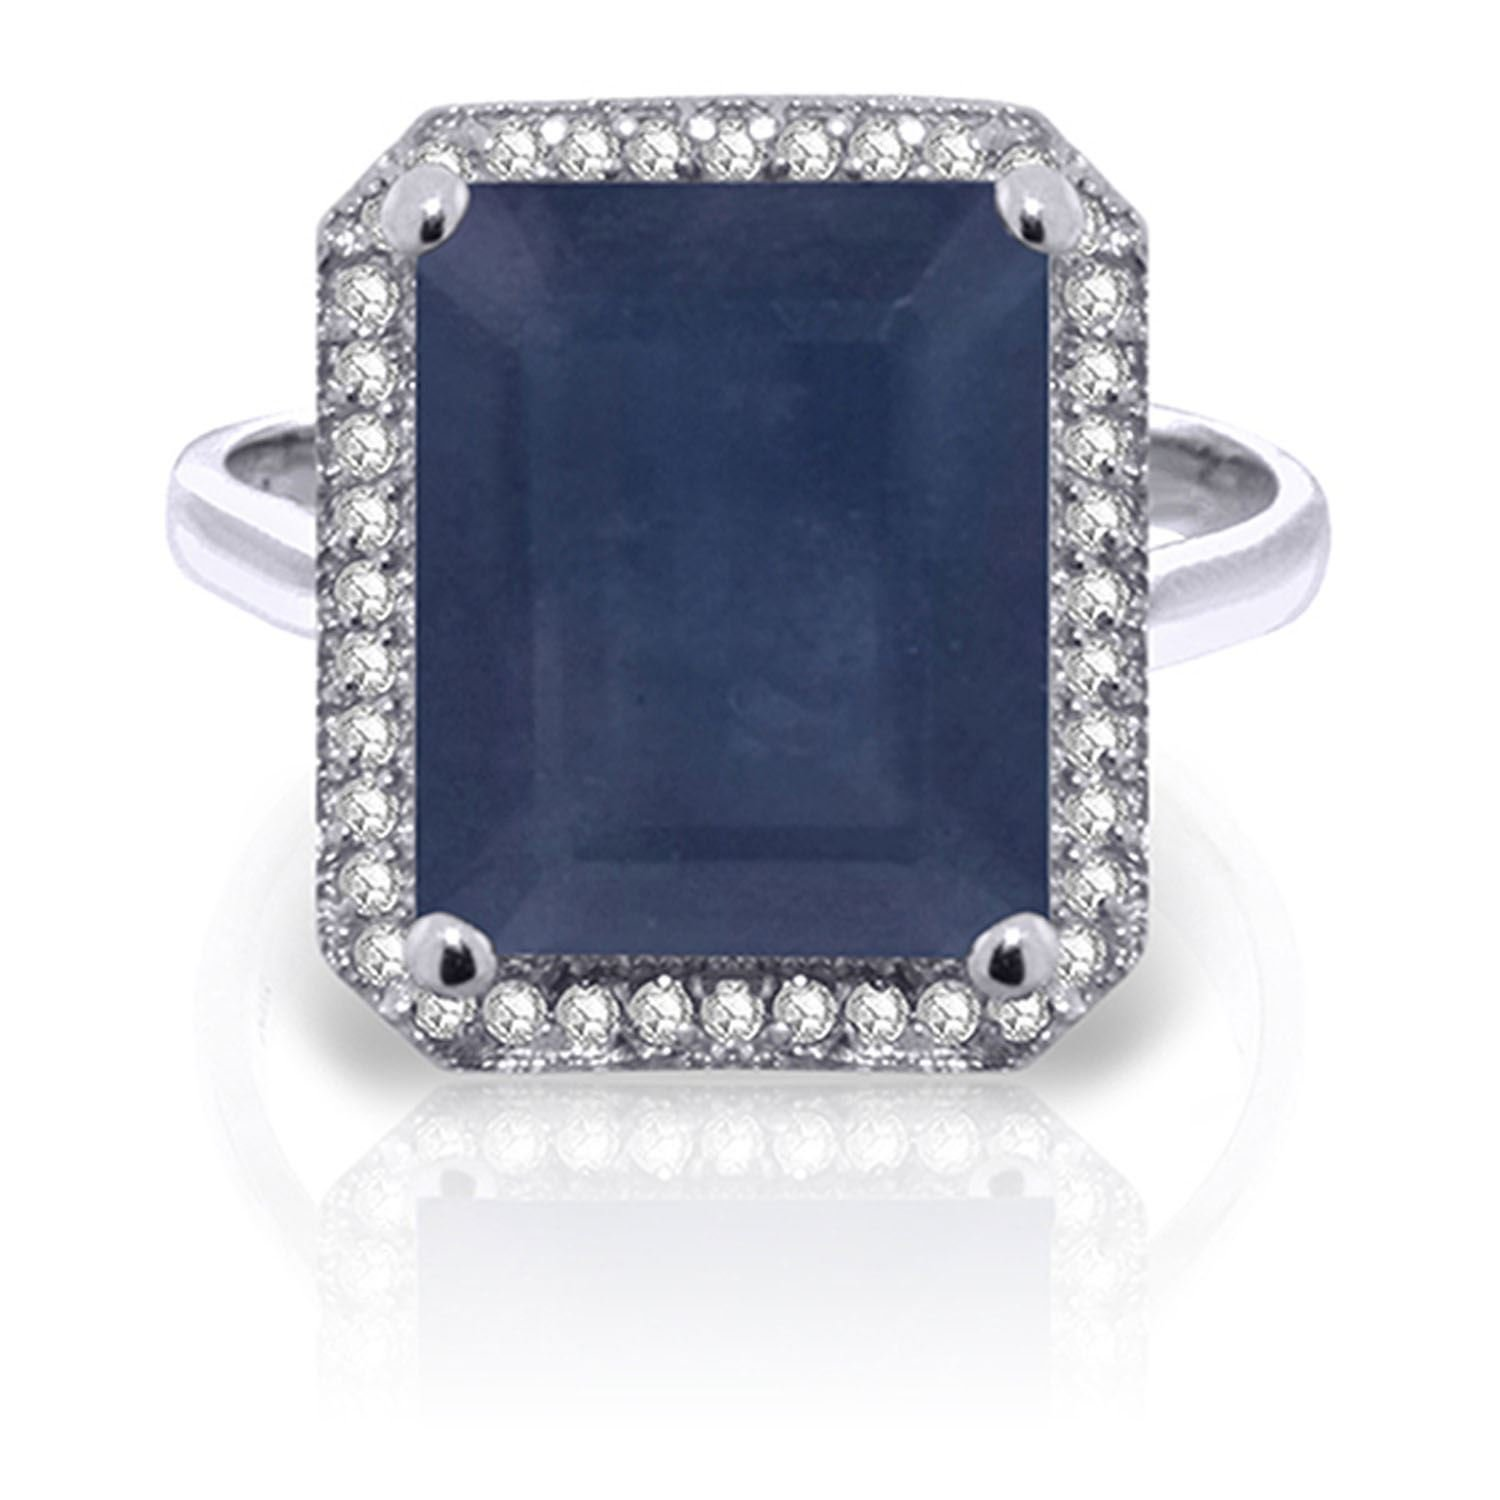 ALARRI 6.6 CTW 14K Solid White Gold Love Is Courageous Sapphire Diamond Ring With Ring Size 7